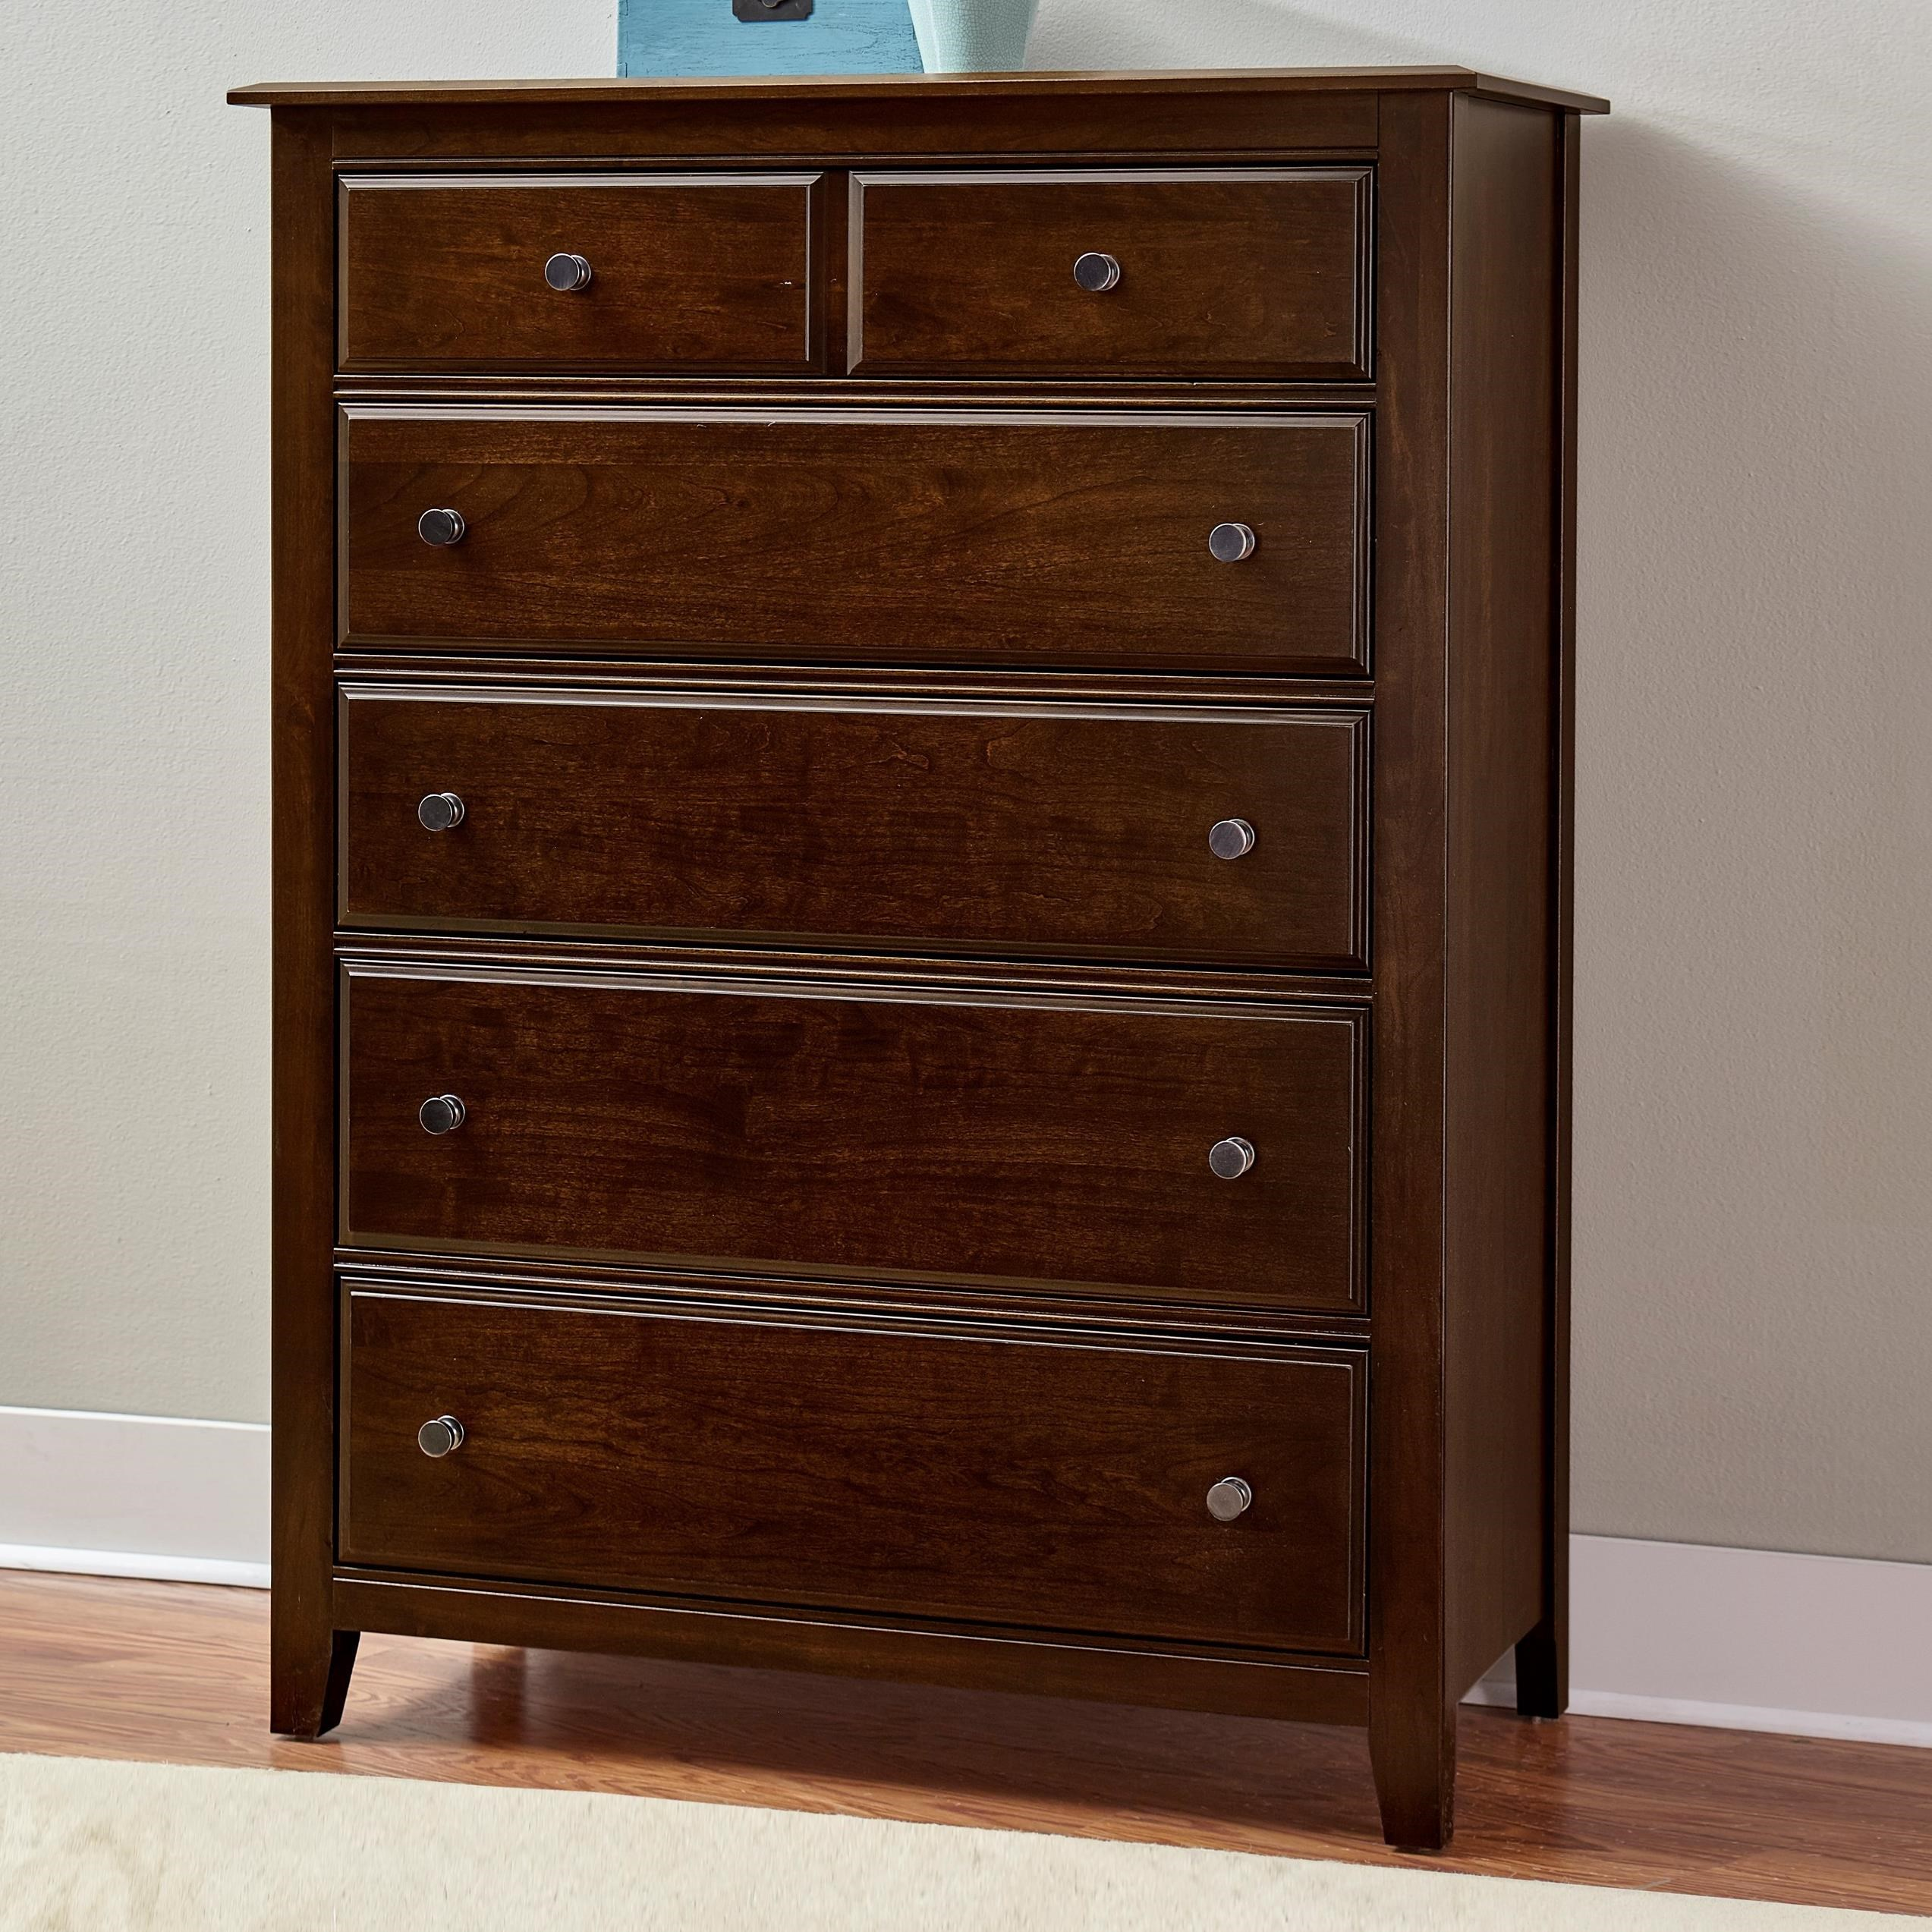 Loft Chest - 5 Drawers